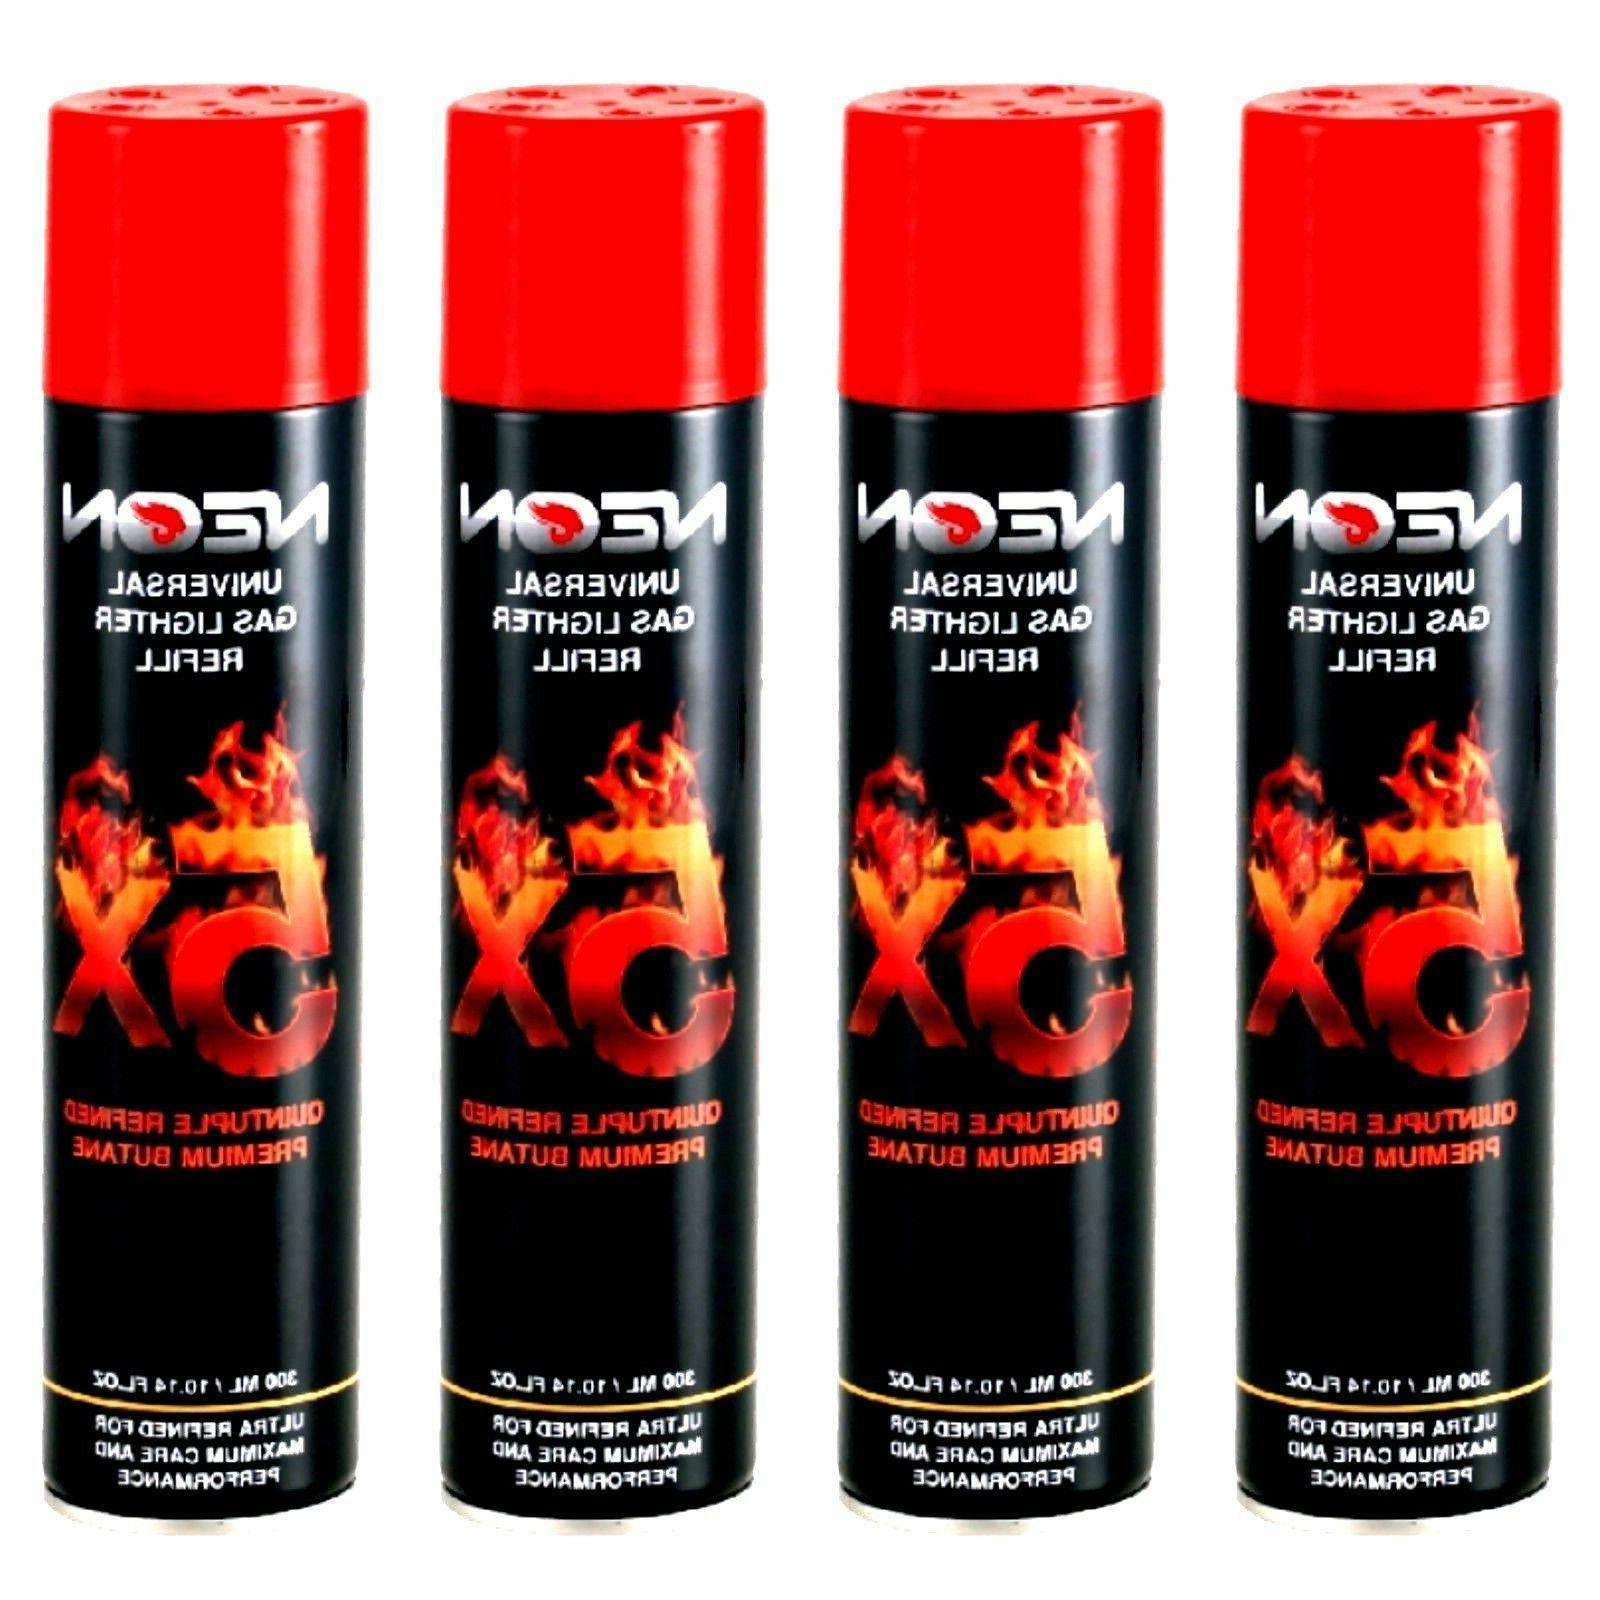 4 Cans Neon Universal Gas Lighter Refill 300 Ml- 5X Refined